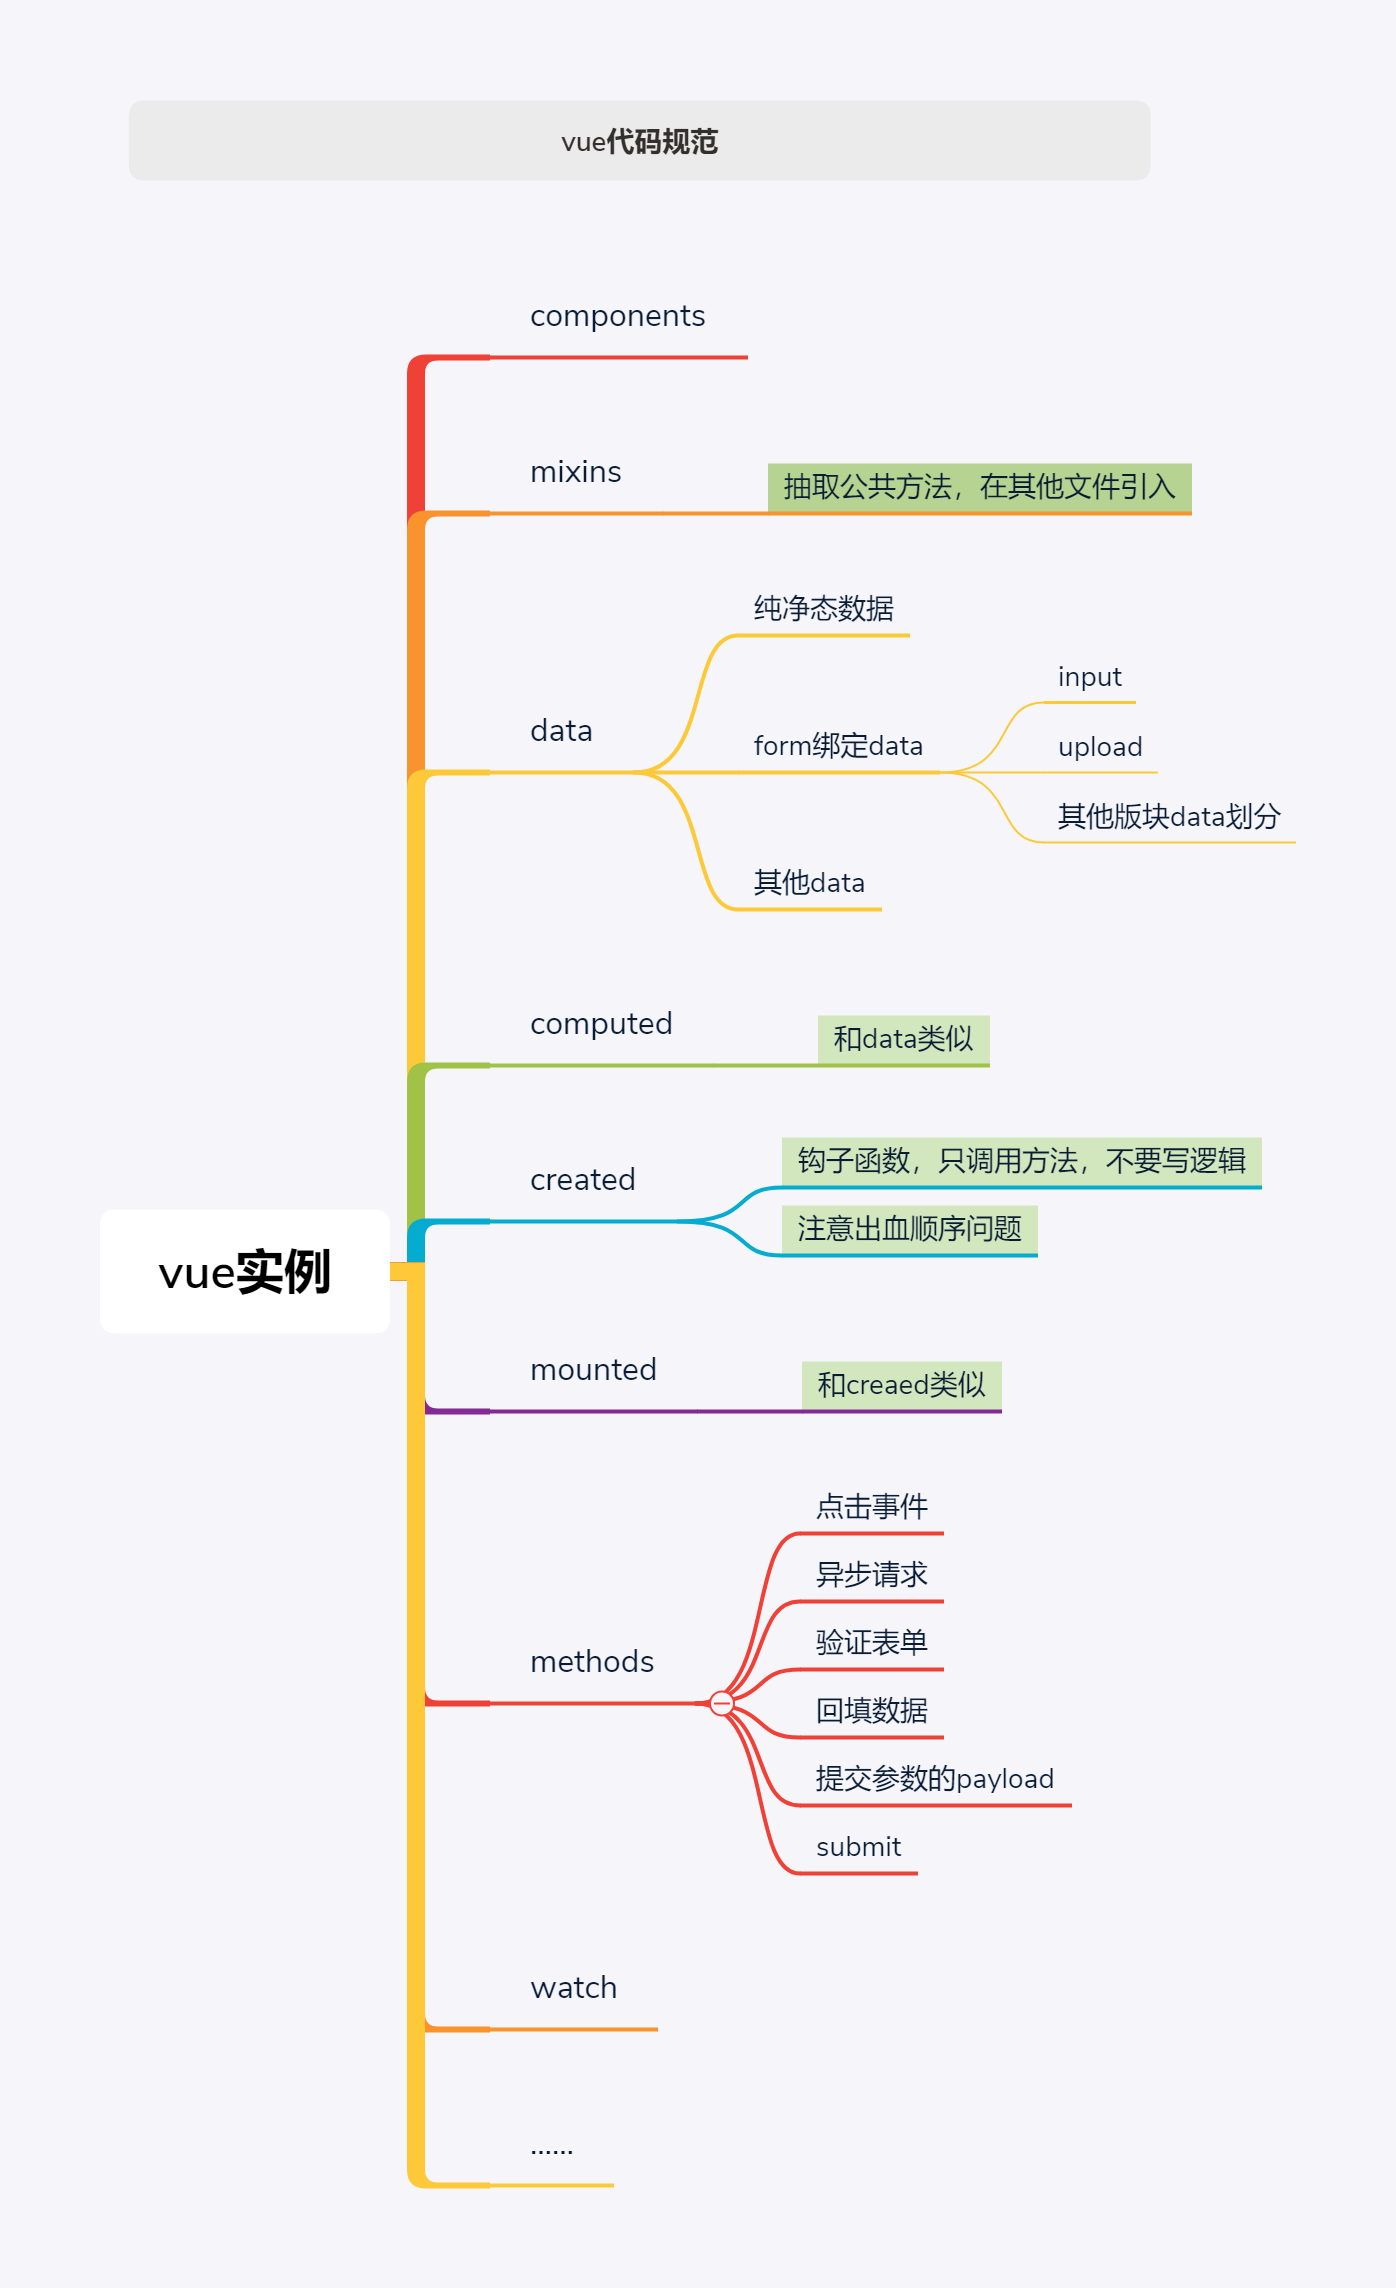 http://images.liuweibo.cn/image/common/vue代码规范xmind图_1556614478517_220565_1556614506131.png